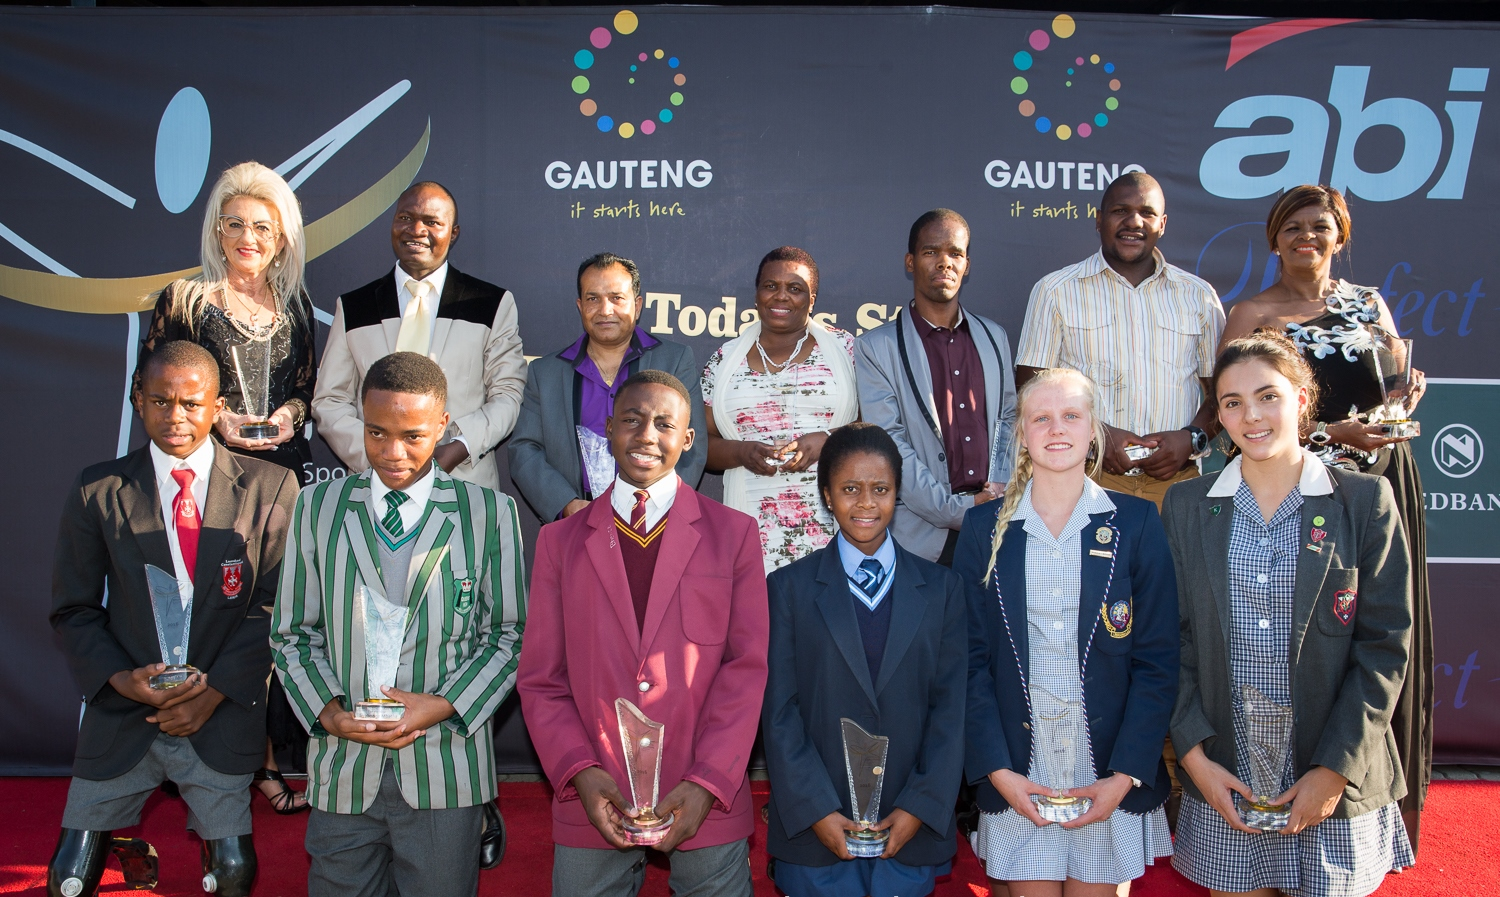 Gauteng schools sports star honoured